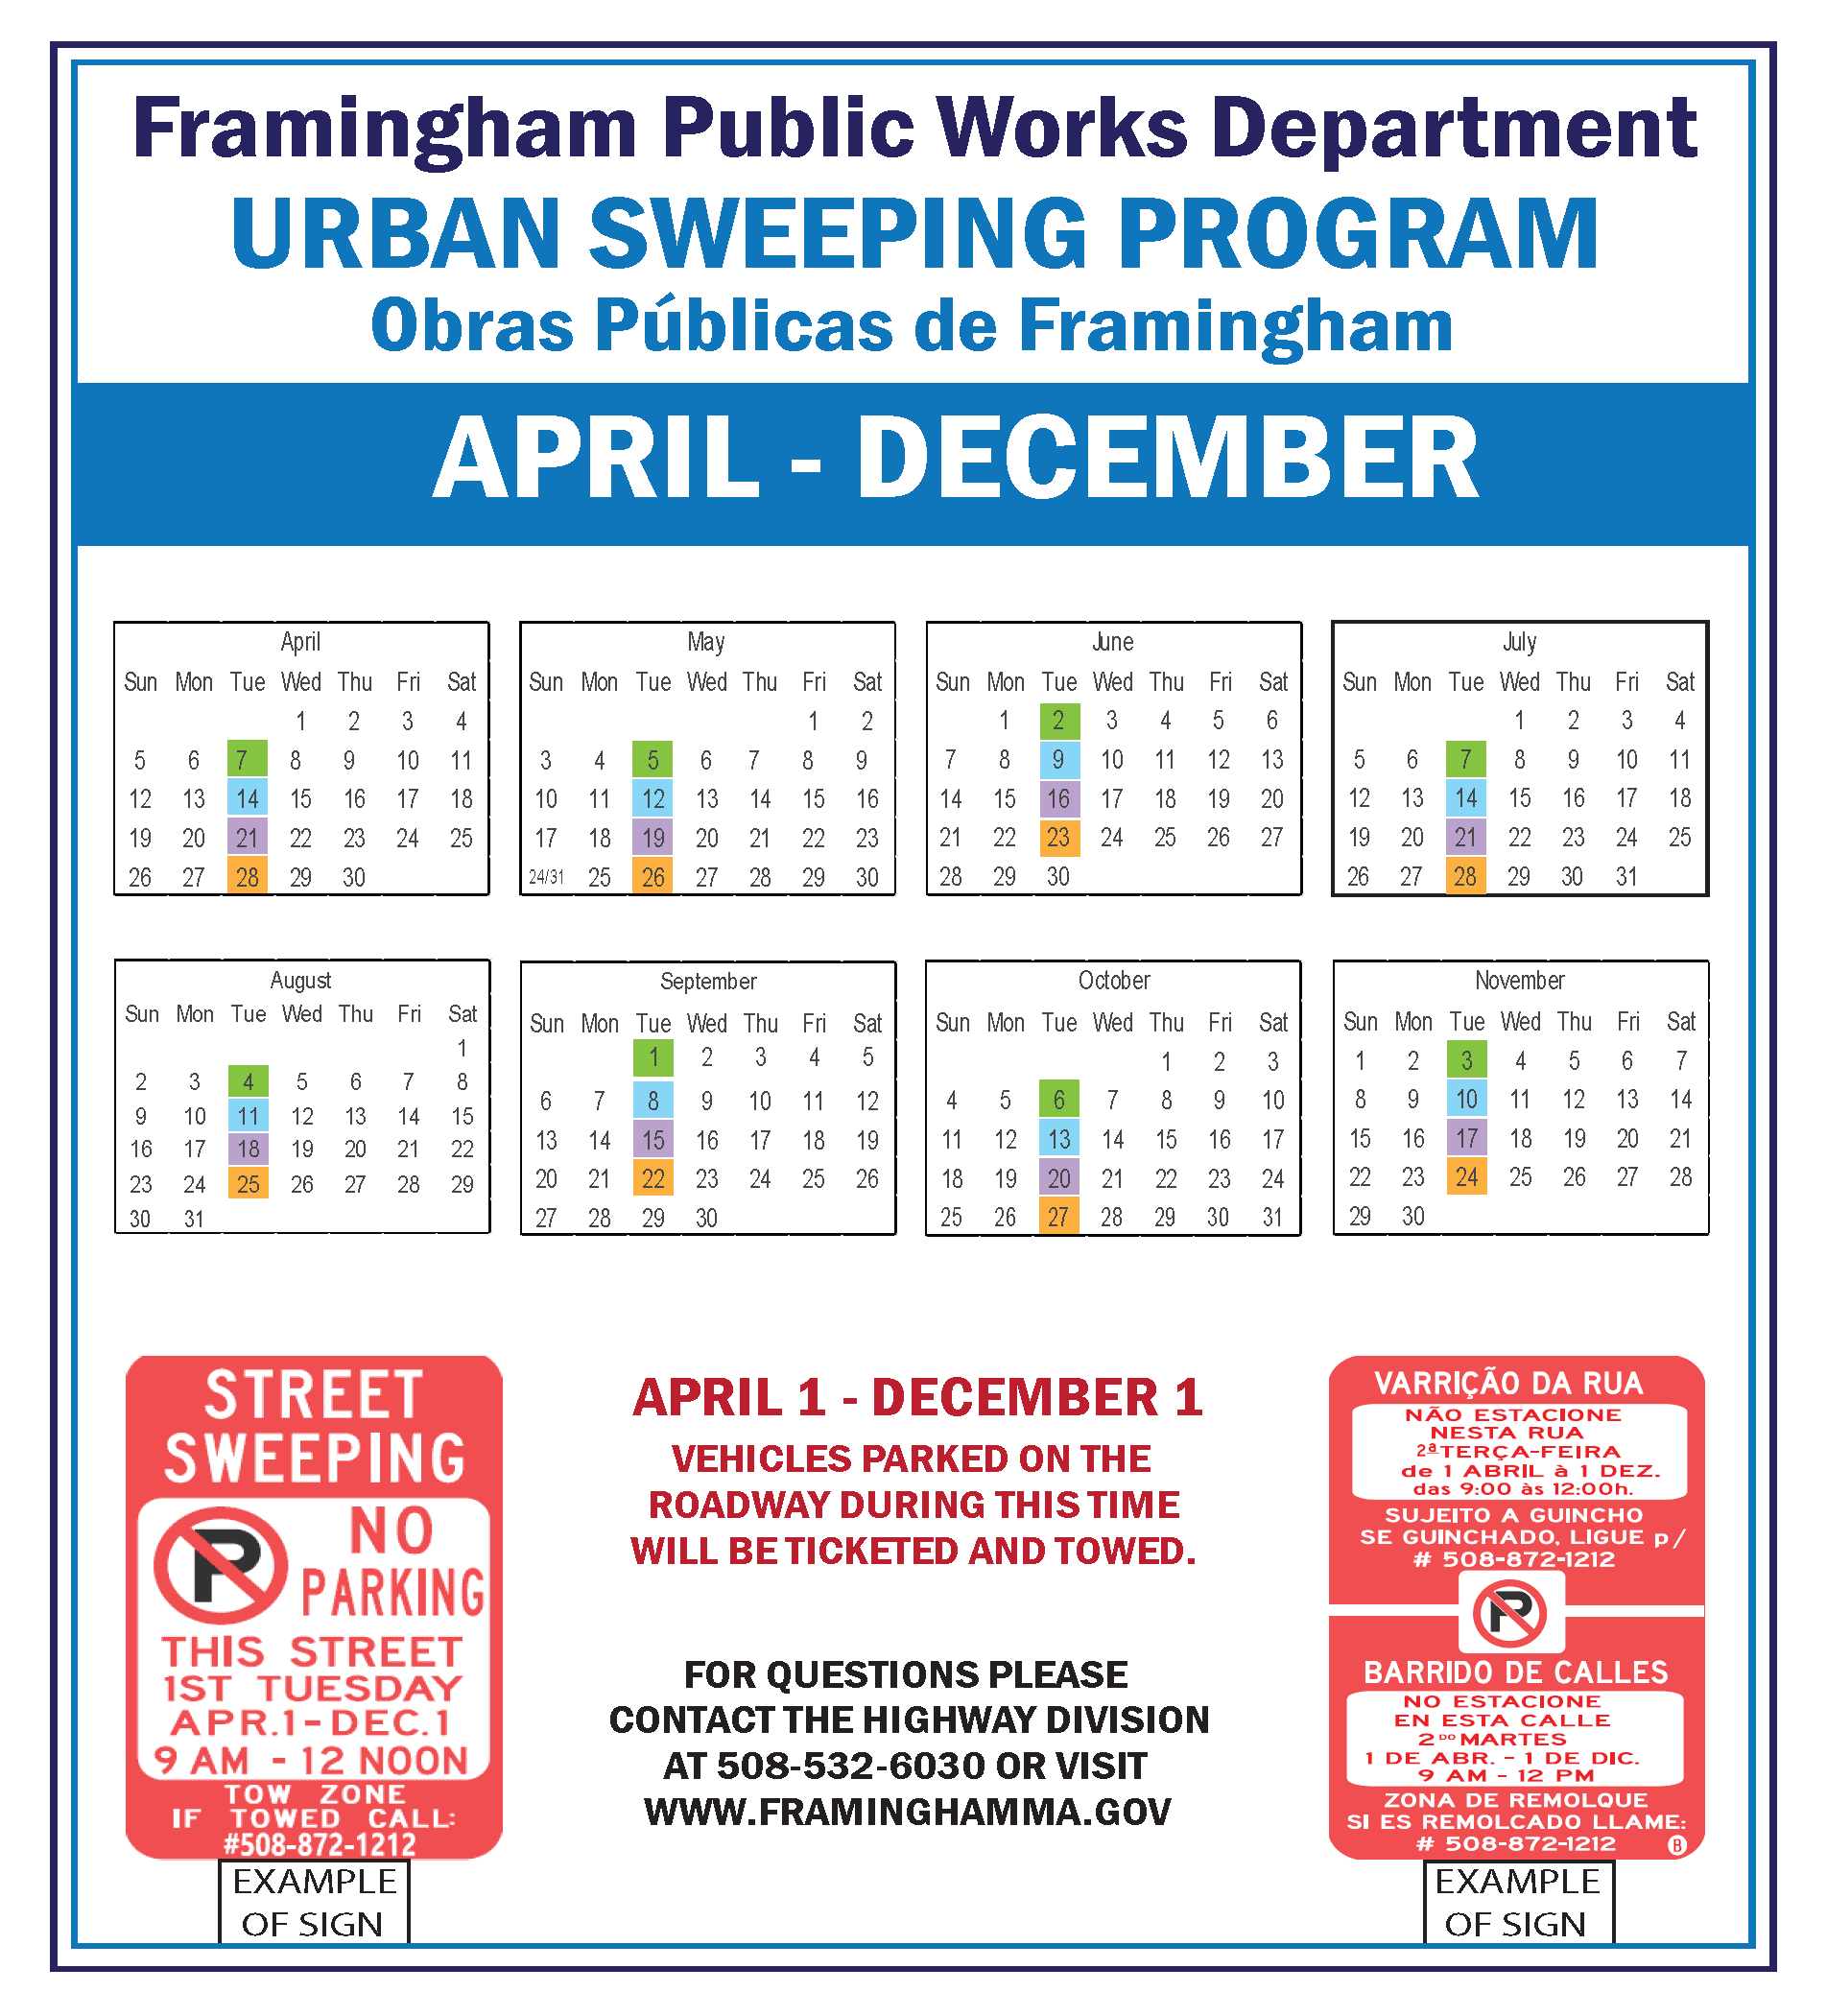 https://www.framinghamma.gov/Admin/DocumentCenter/Document/View/38631/Urban-Street-Sweeping-Season-N